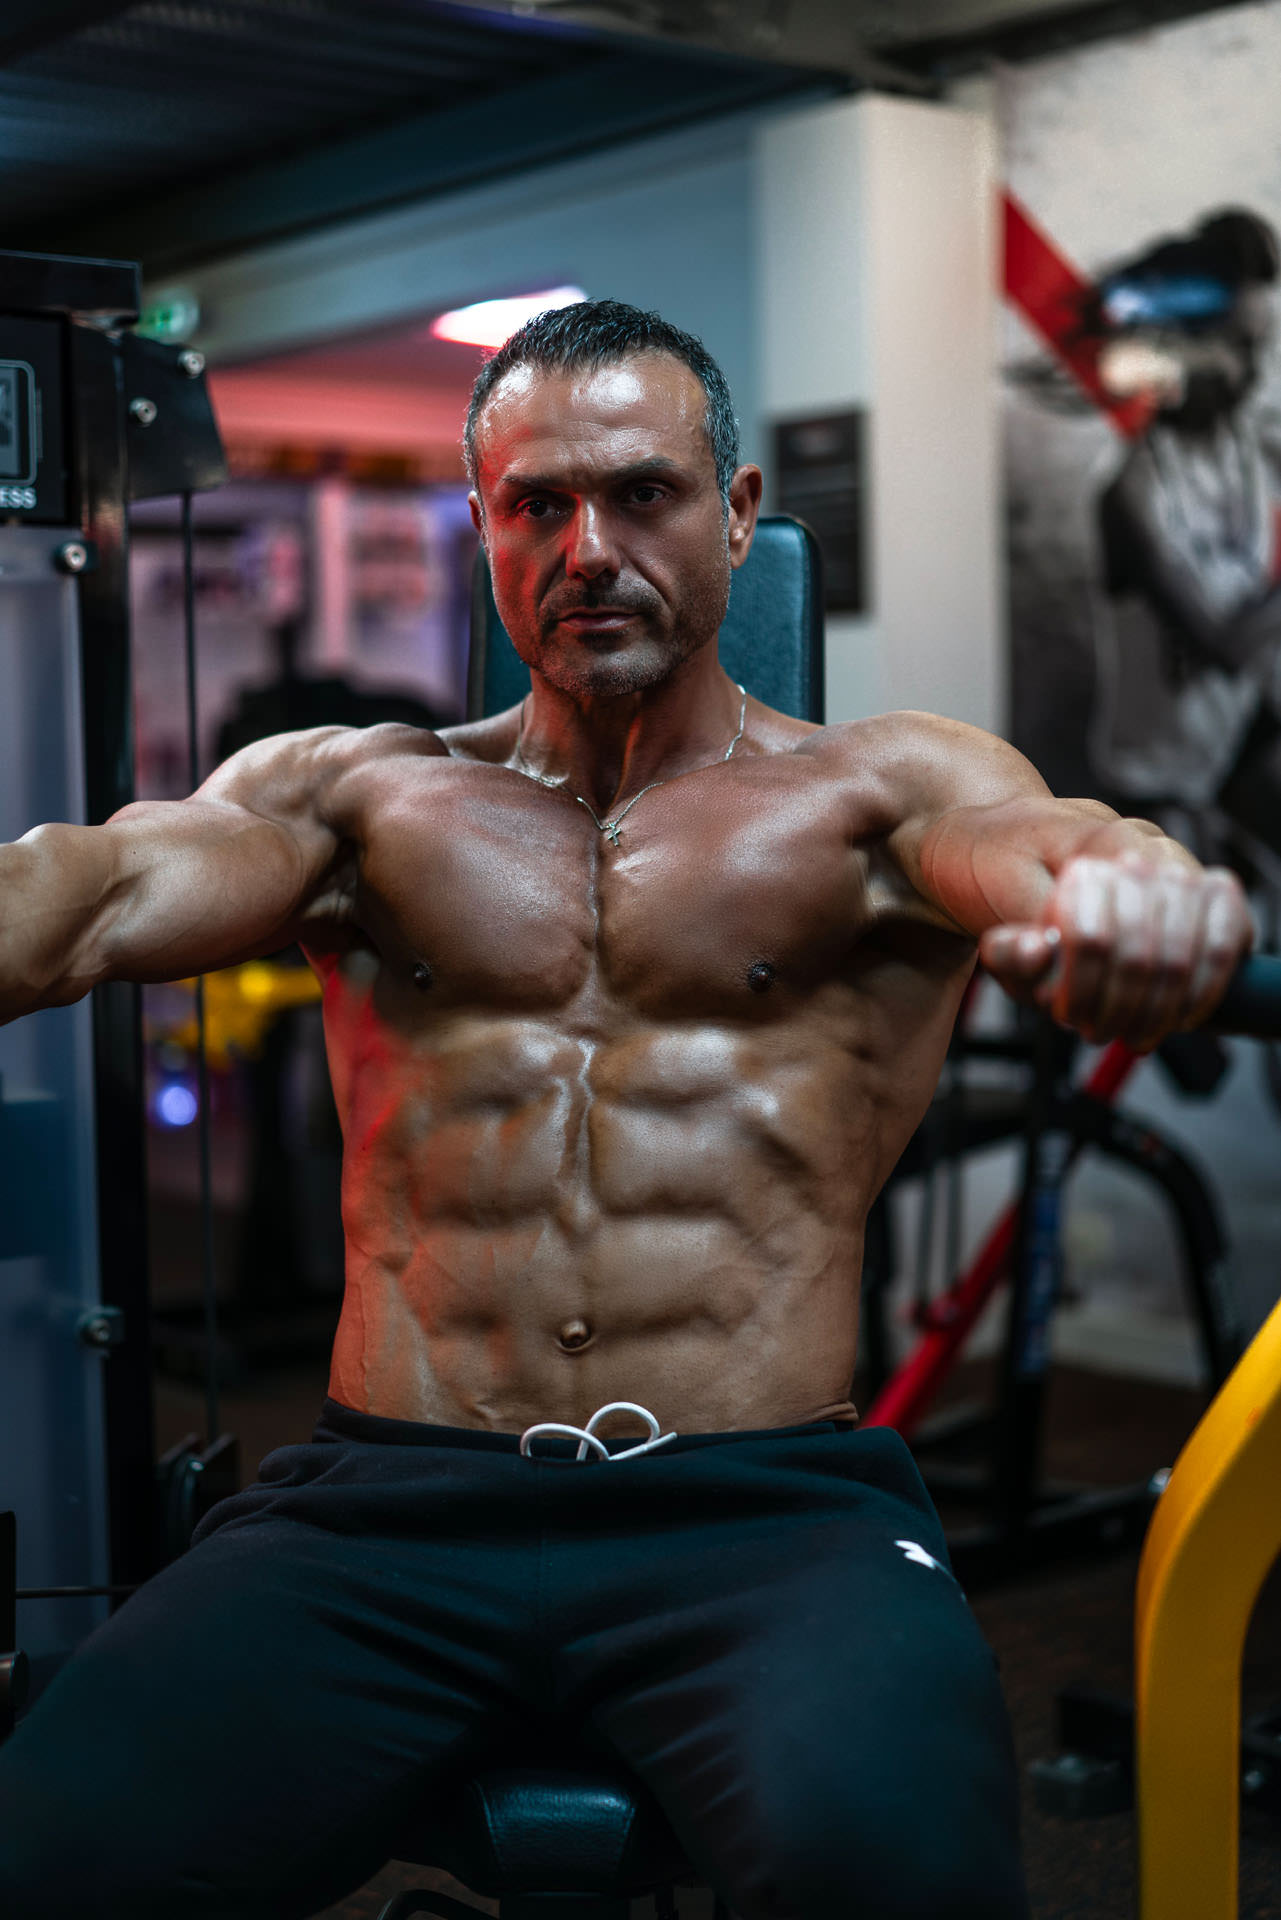 2020-03-15 - Enzo - Muscle Factory - 01736 - 1920px